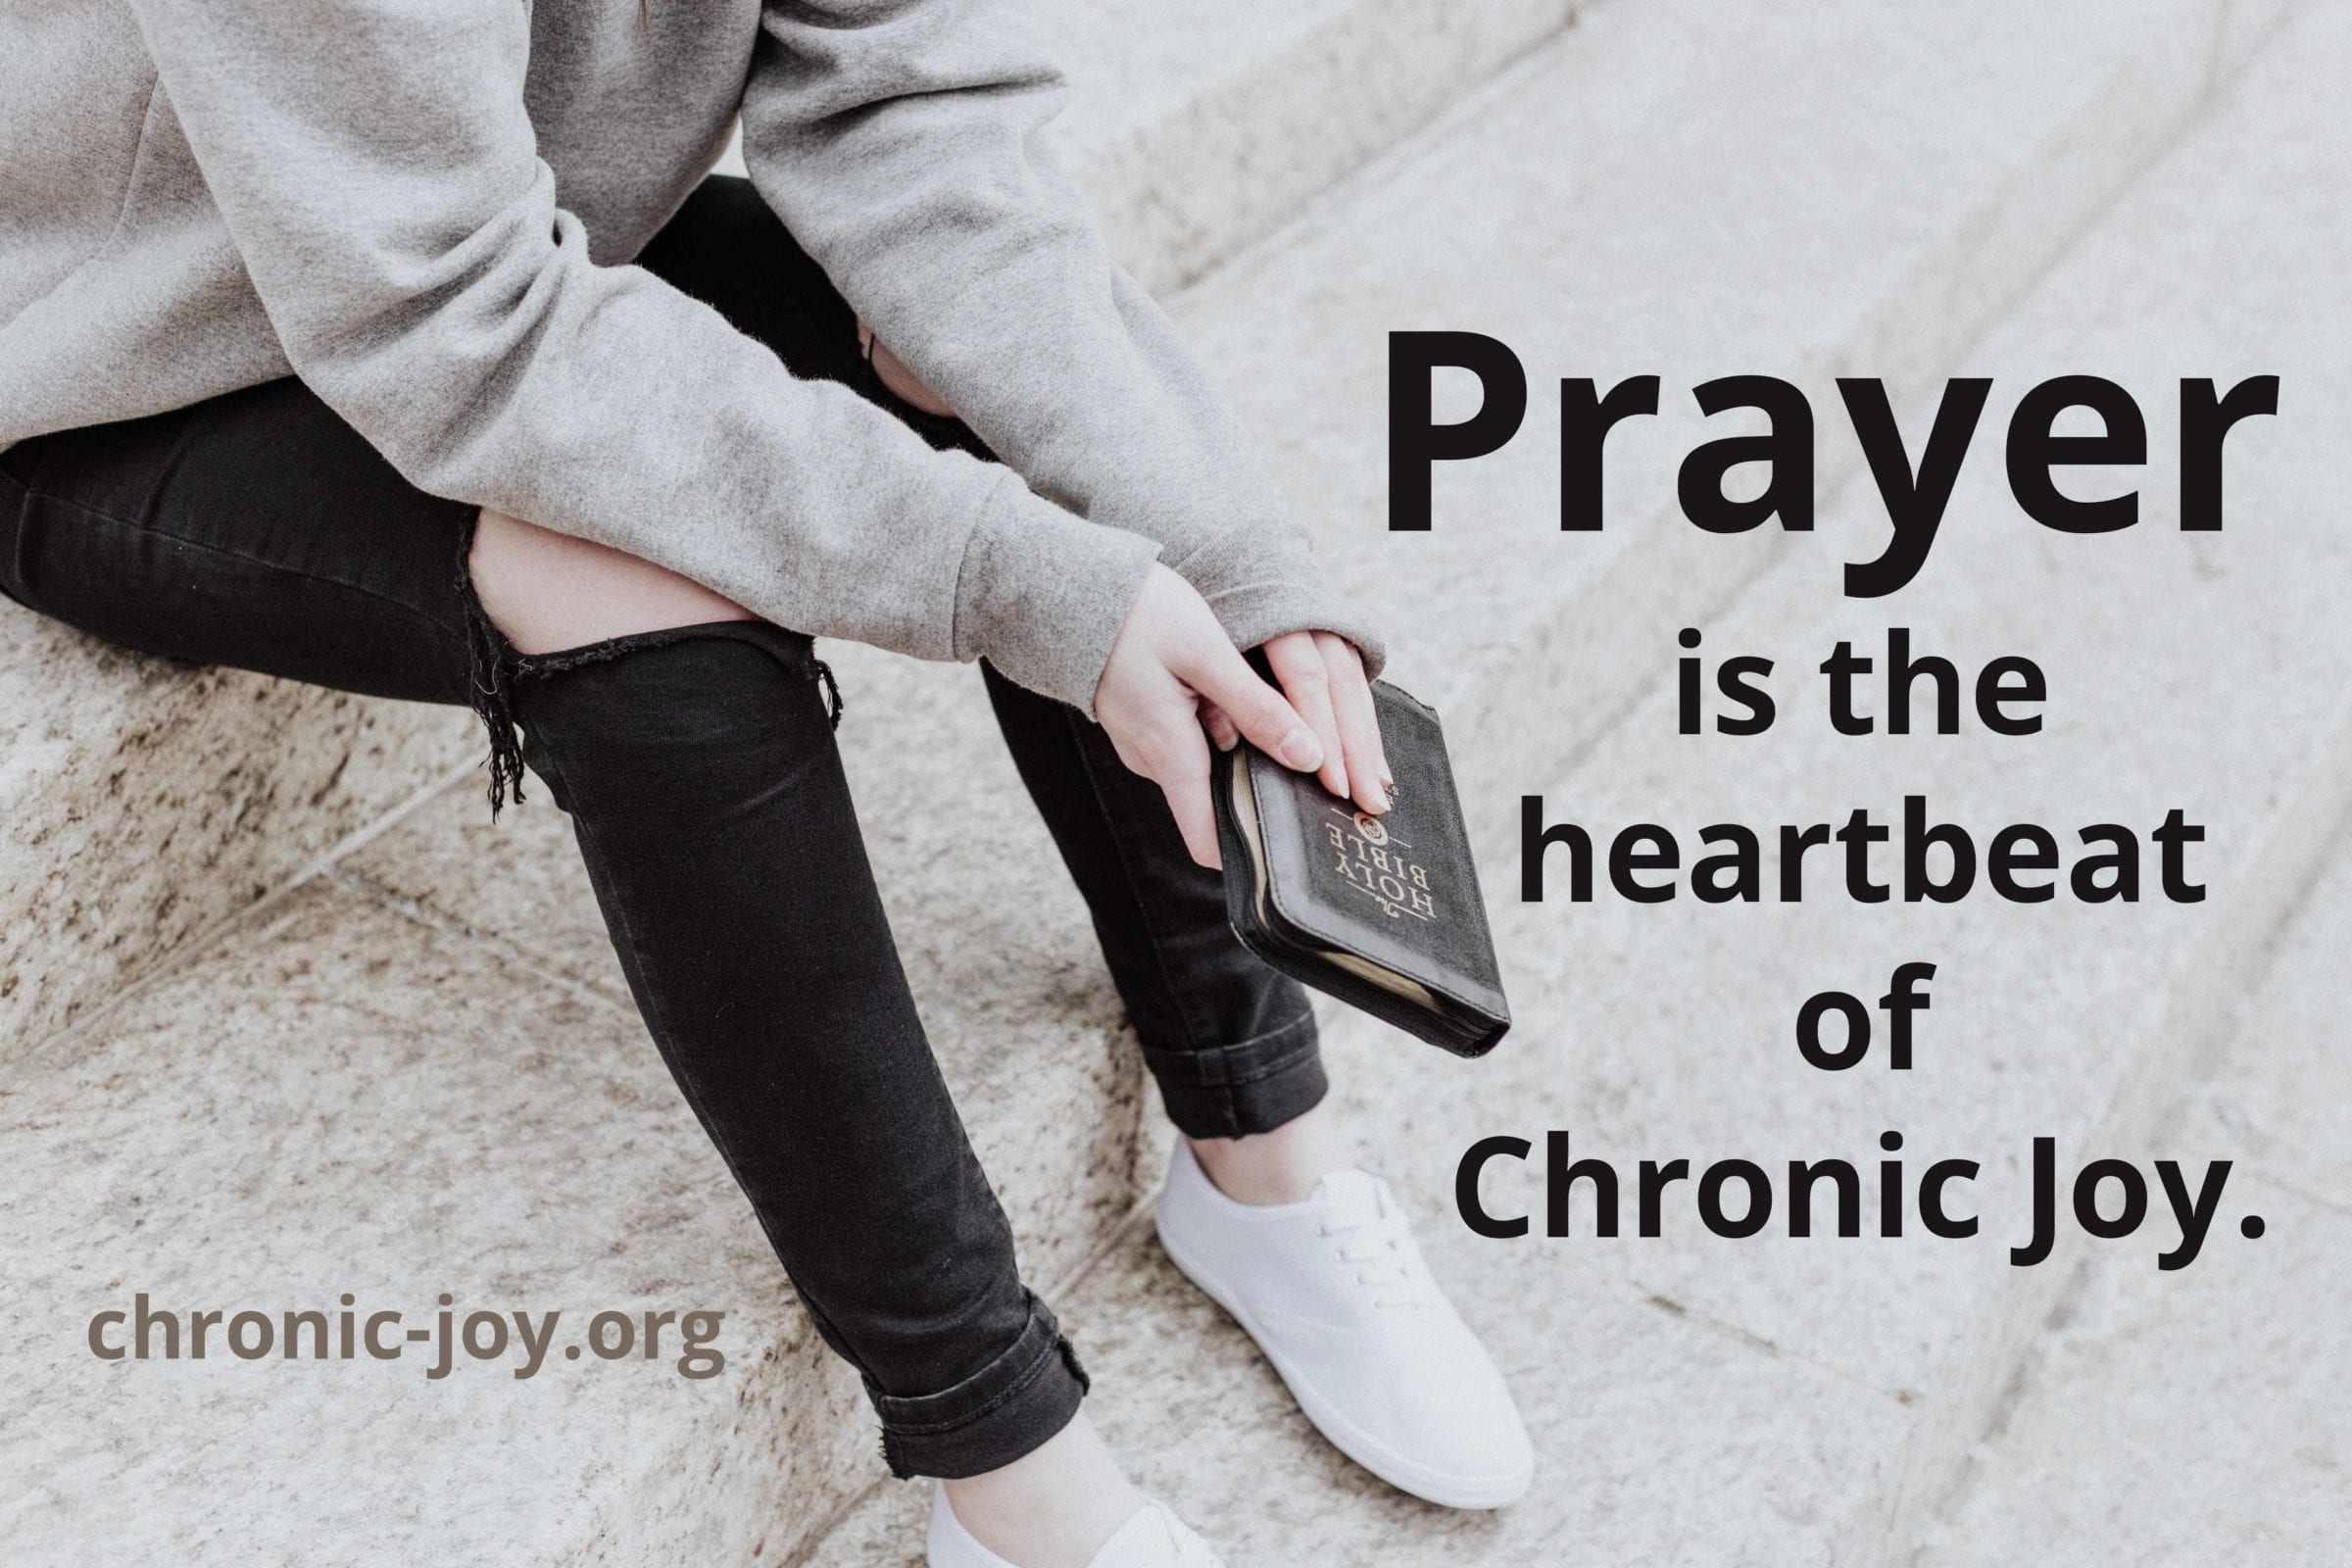 Prayer is the heartbeat of Chronic Joy.